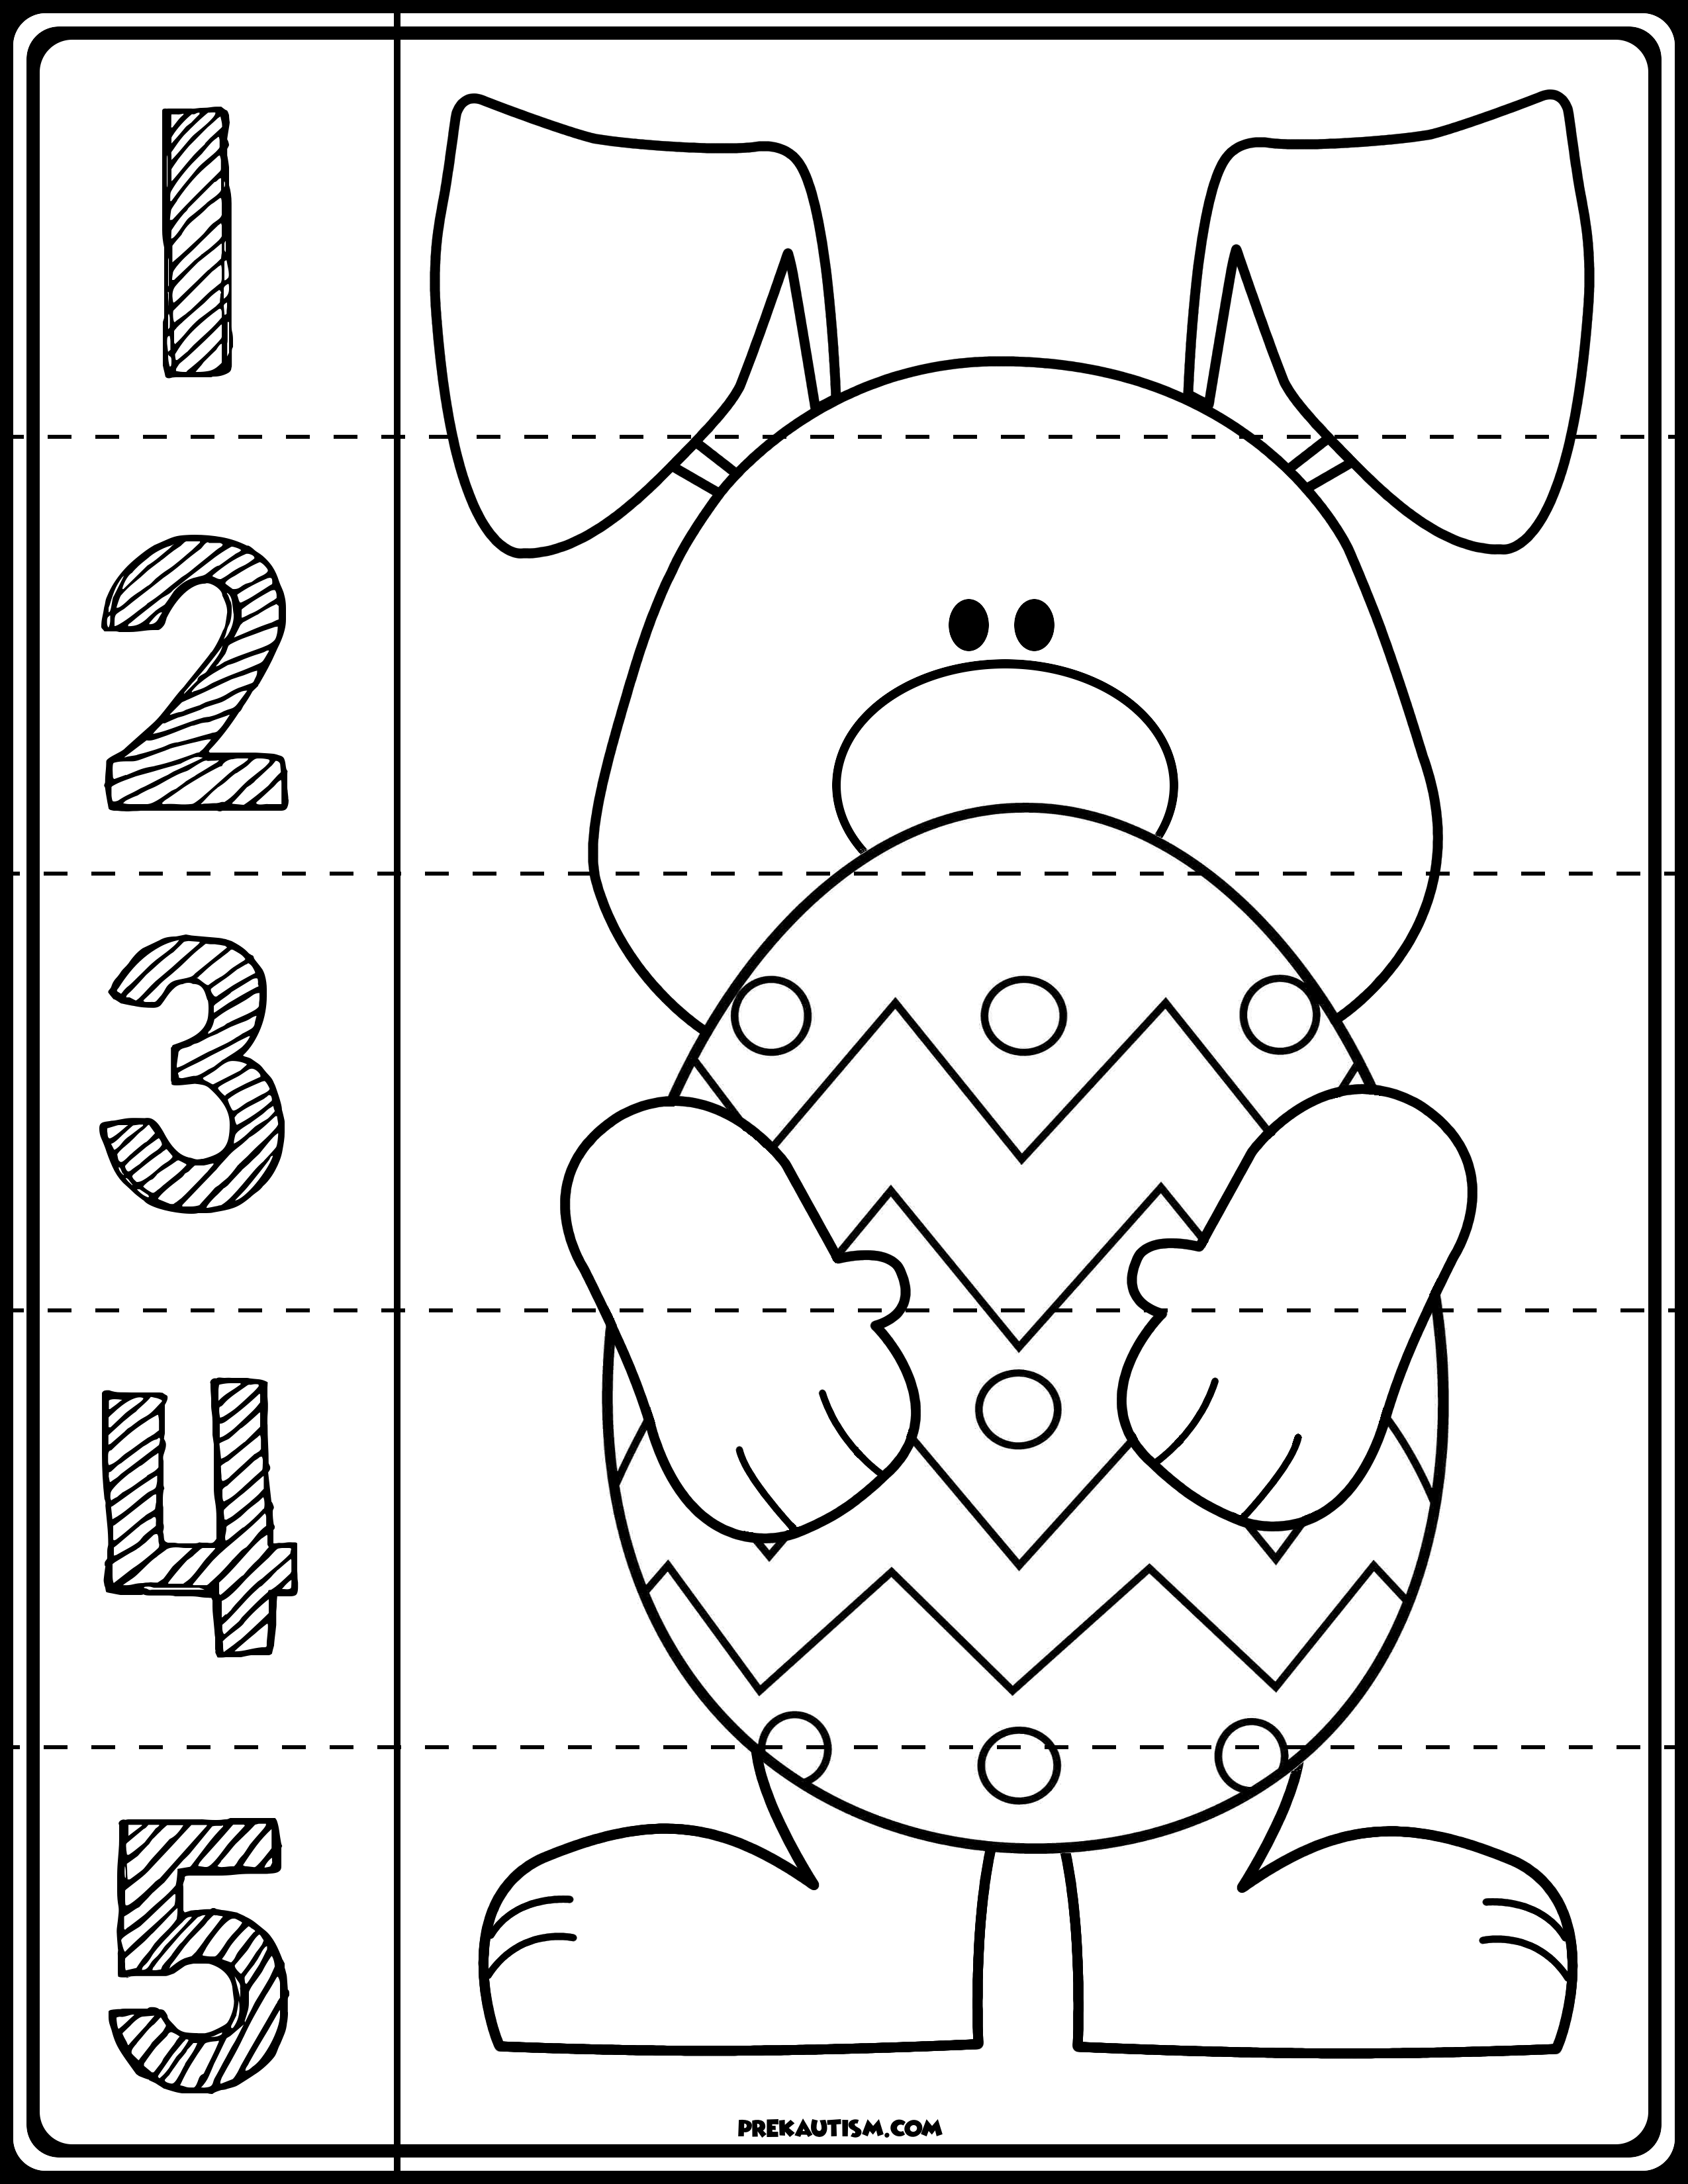 Easter Bunny Line Puzzles Easter Math Worksheets Easter Preschool Preschool Worksheets [ 3300 x 2550 Pixel ]